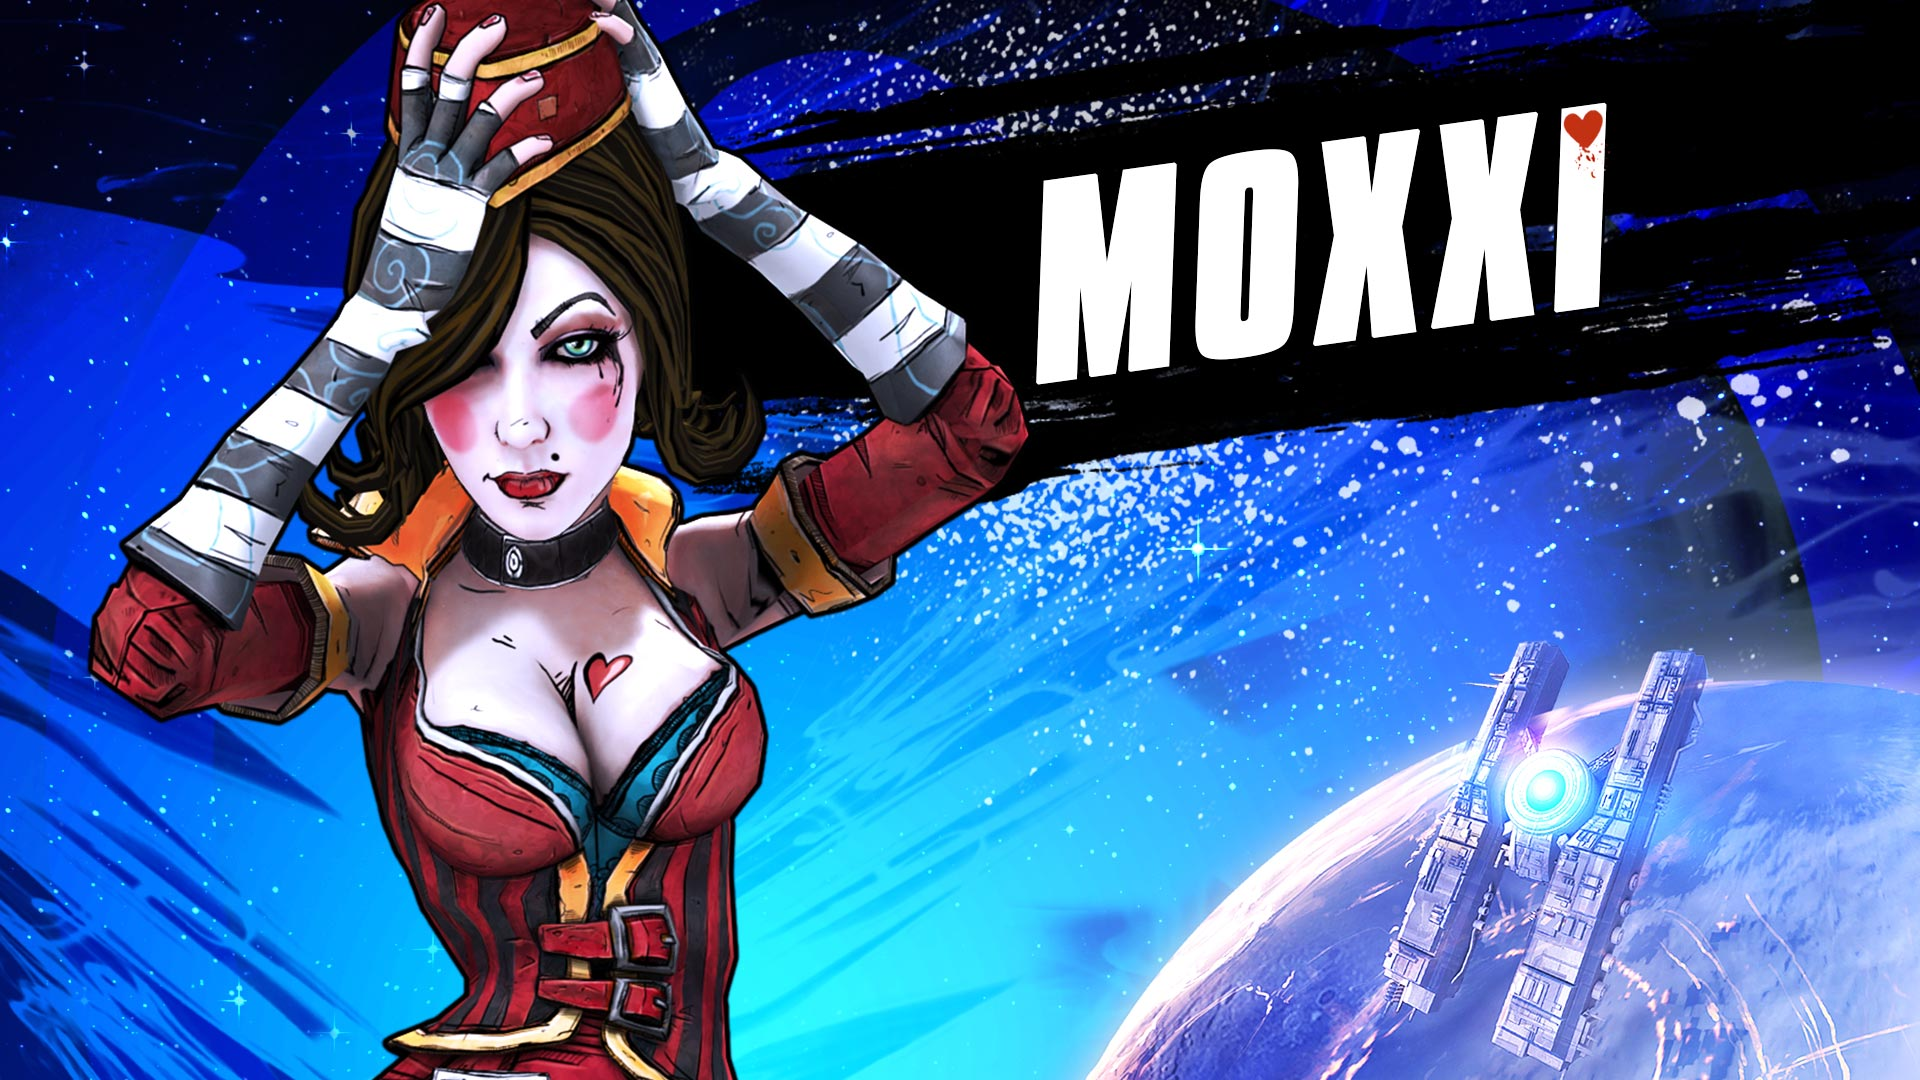 Borderlands: The Pre-Sequel - Moxxi | Steam Trading Cards